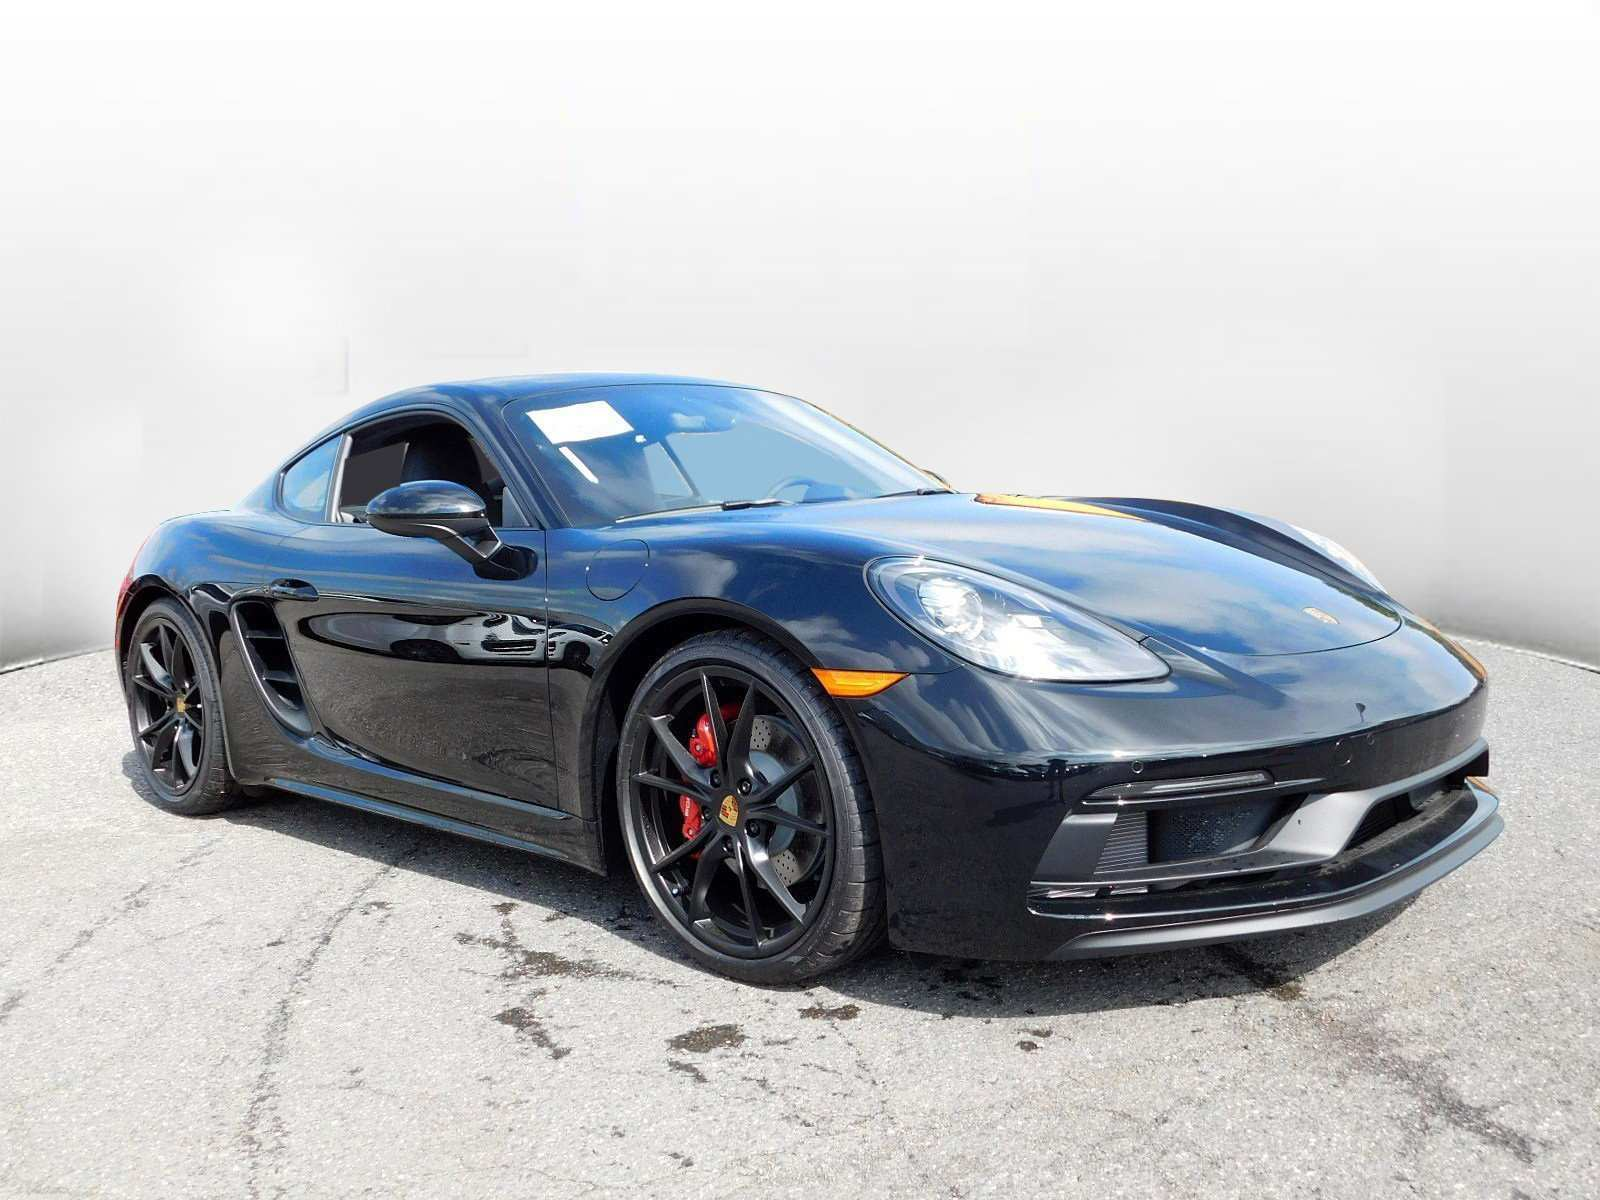 19 New 2019 Porsche Cayman Spesification for 2019 Porsche Cayman